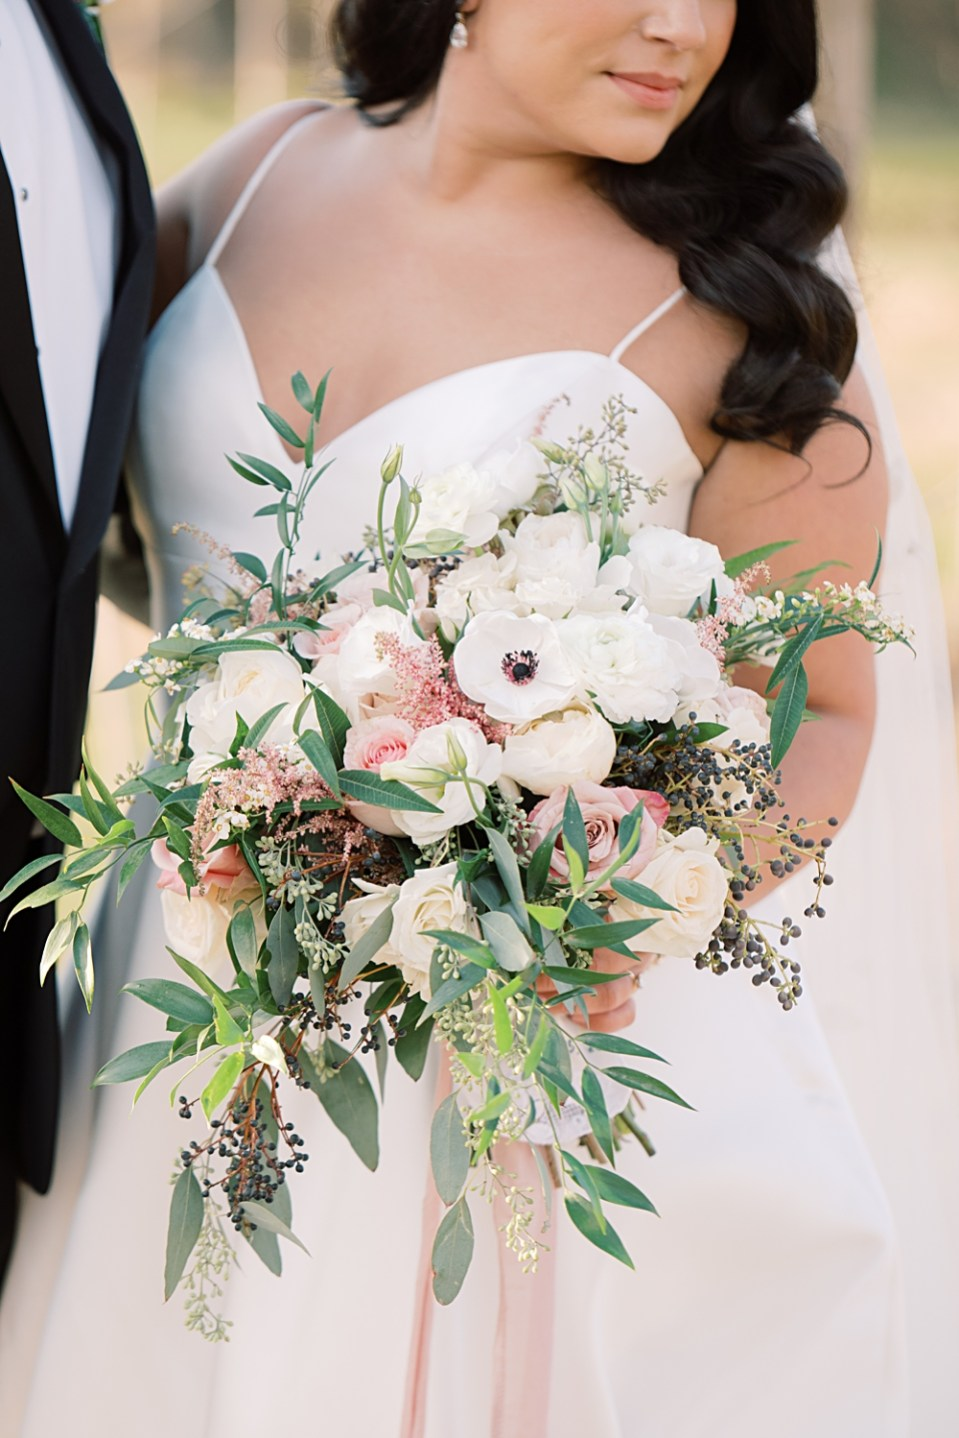 mauve and white wedding bouquet | from peonies to paint chips | sarah canning photography